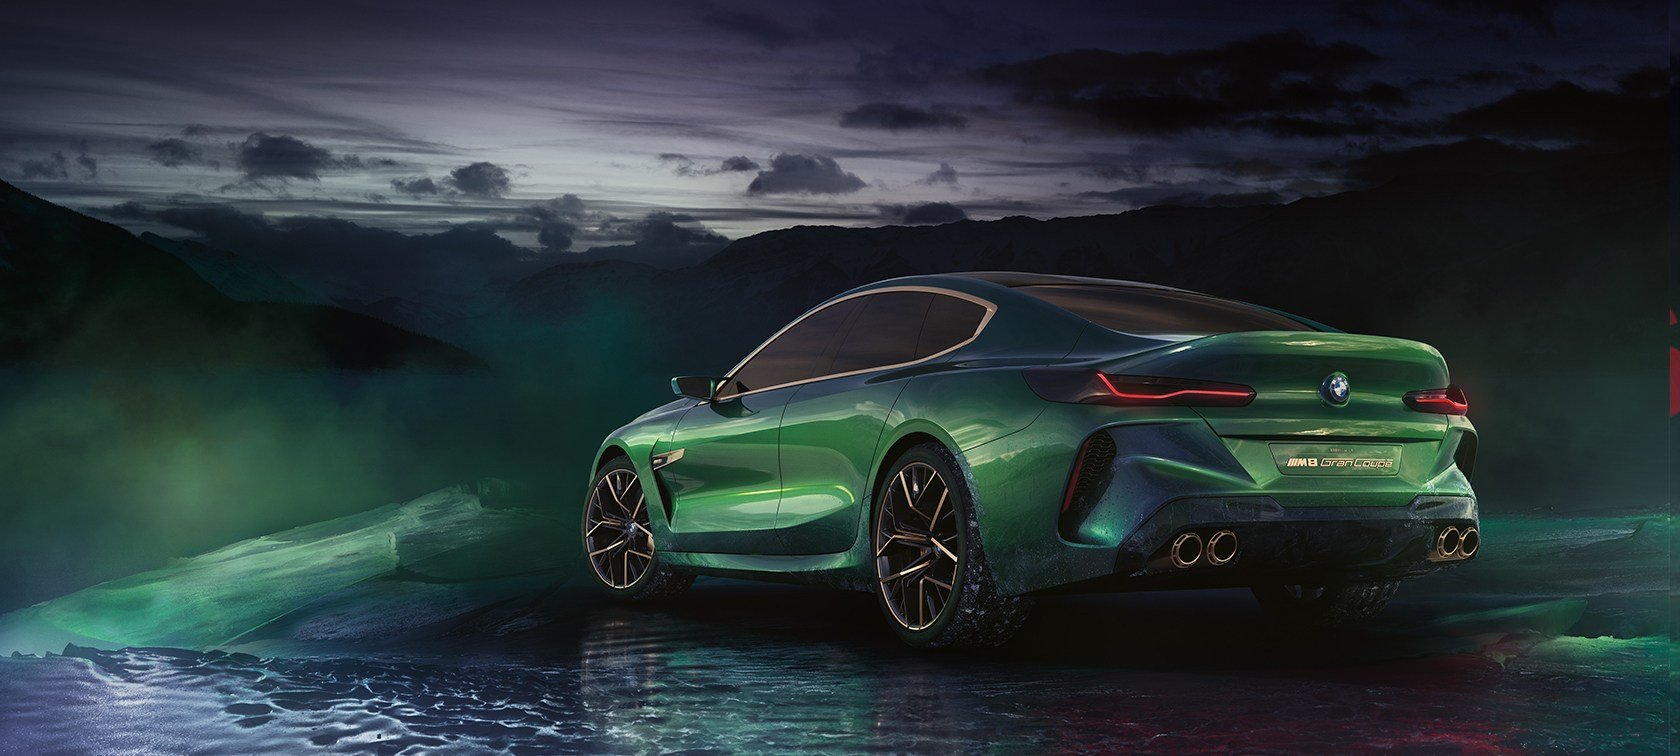 Latest Bmw Concept M8 Gran Coupé High Performance Luxury Bmw Free Download